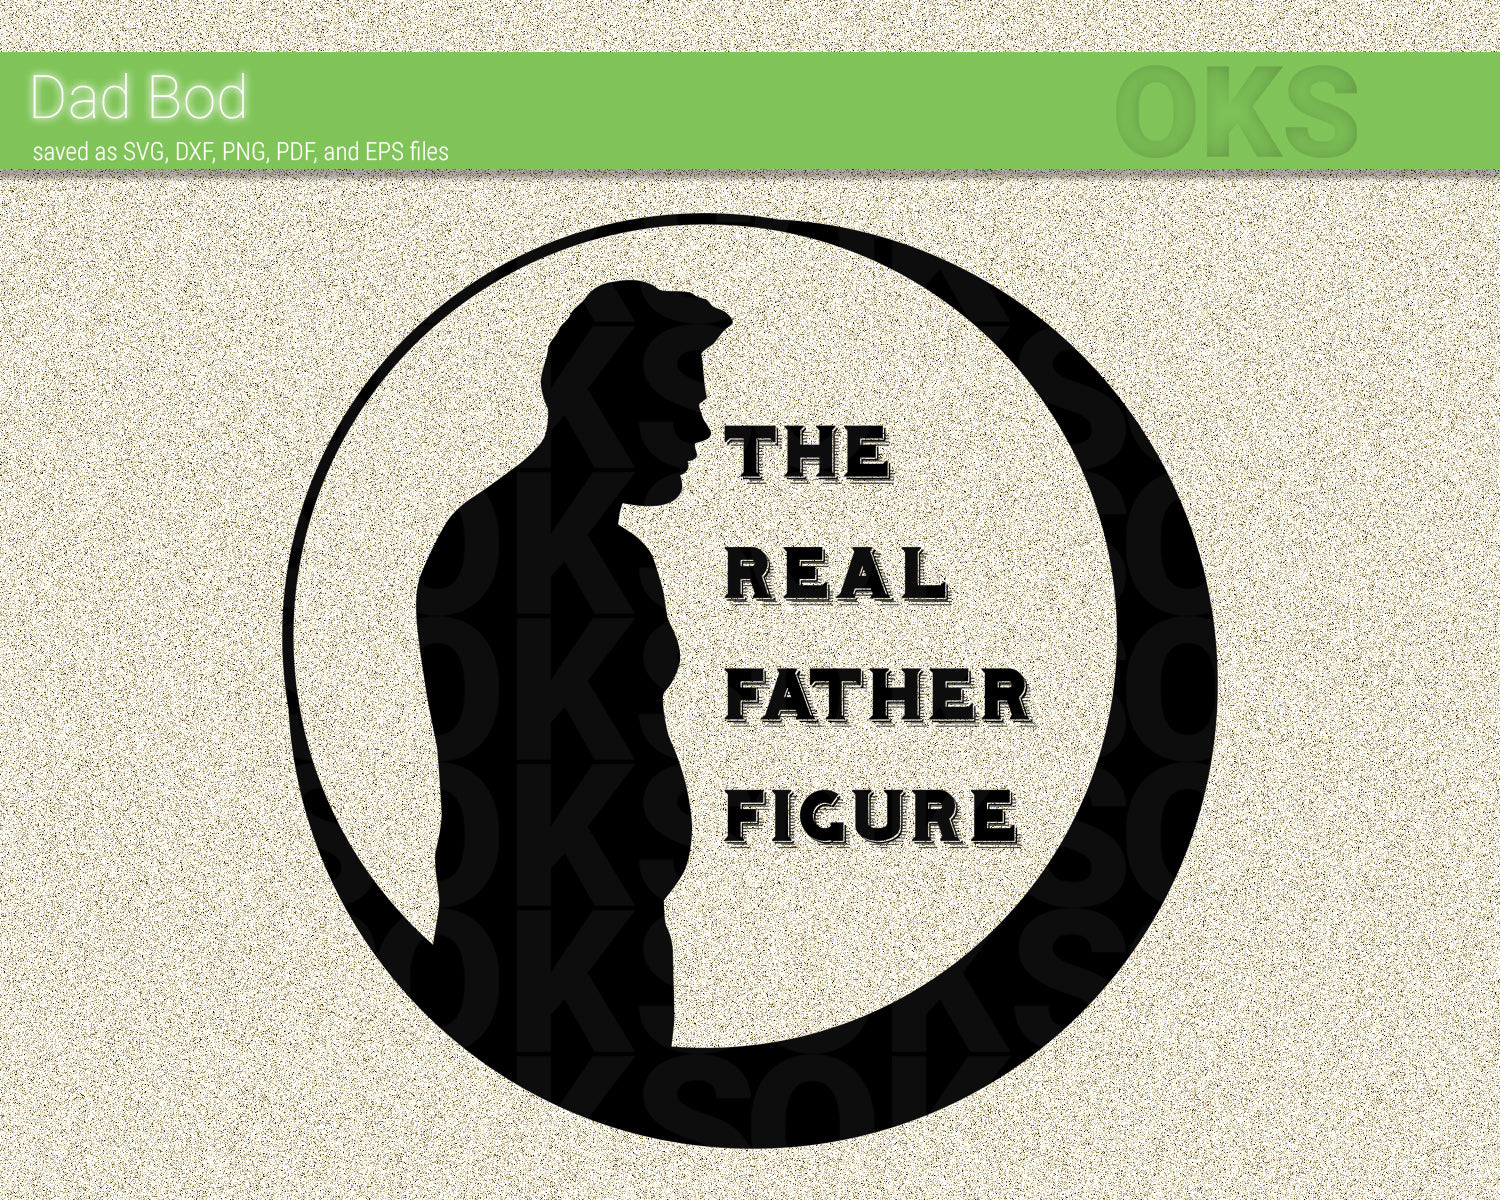 FREE the real father figure svg, dad bod dxf, vector, eps